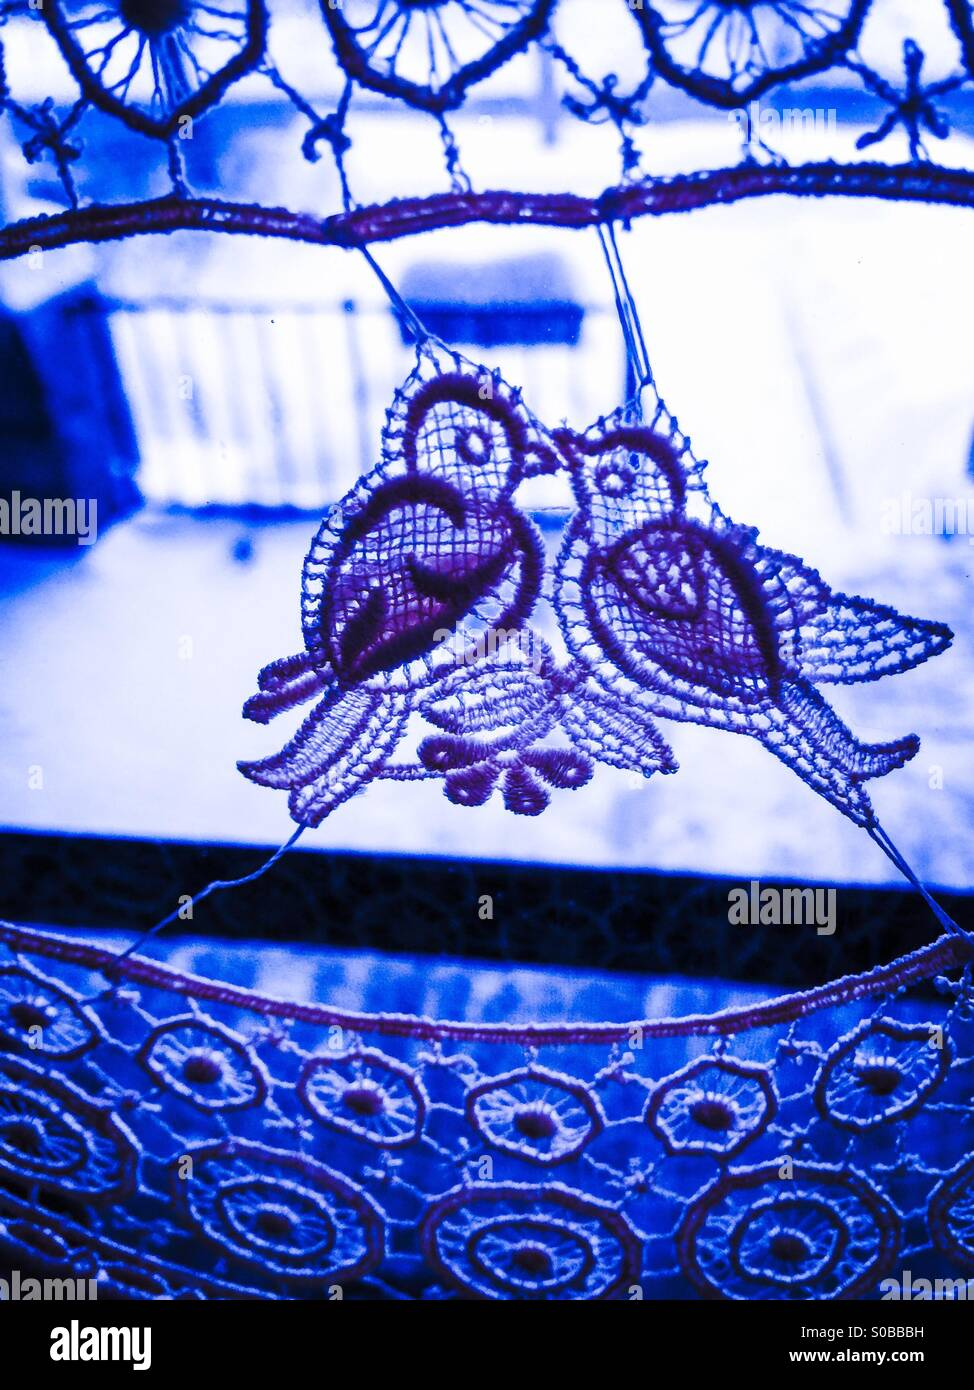 Blue lovebirds - Stock Image